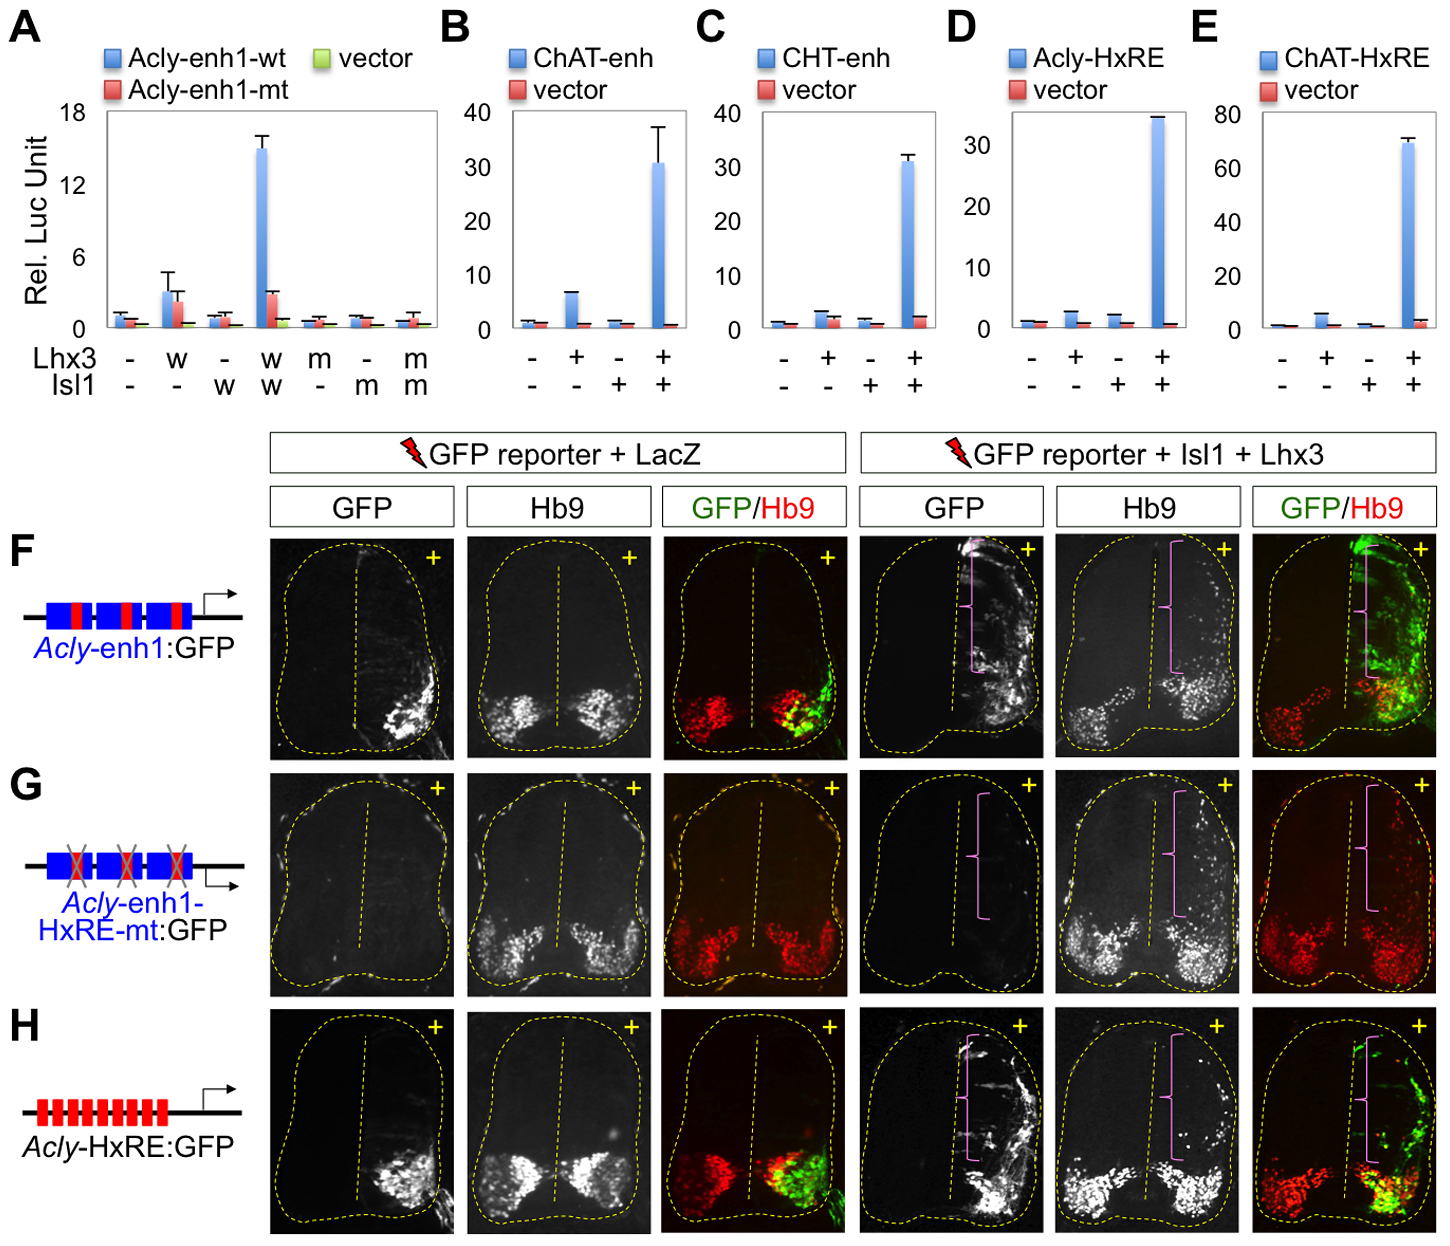 The cholinergic enhancers are activated by the Isl1-Lhx3-hexamer in the developing spinal cord.